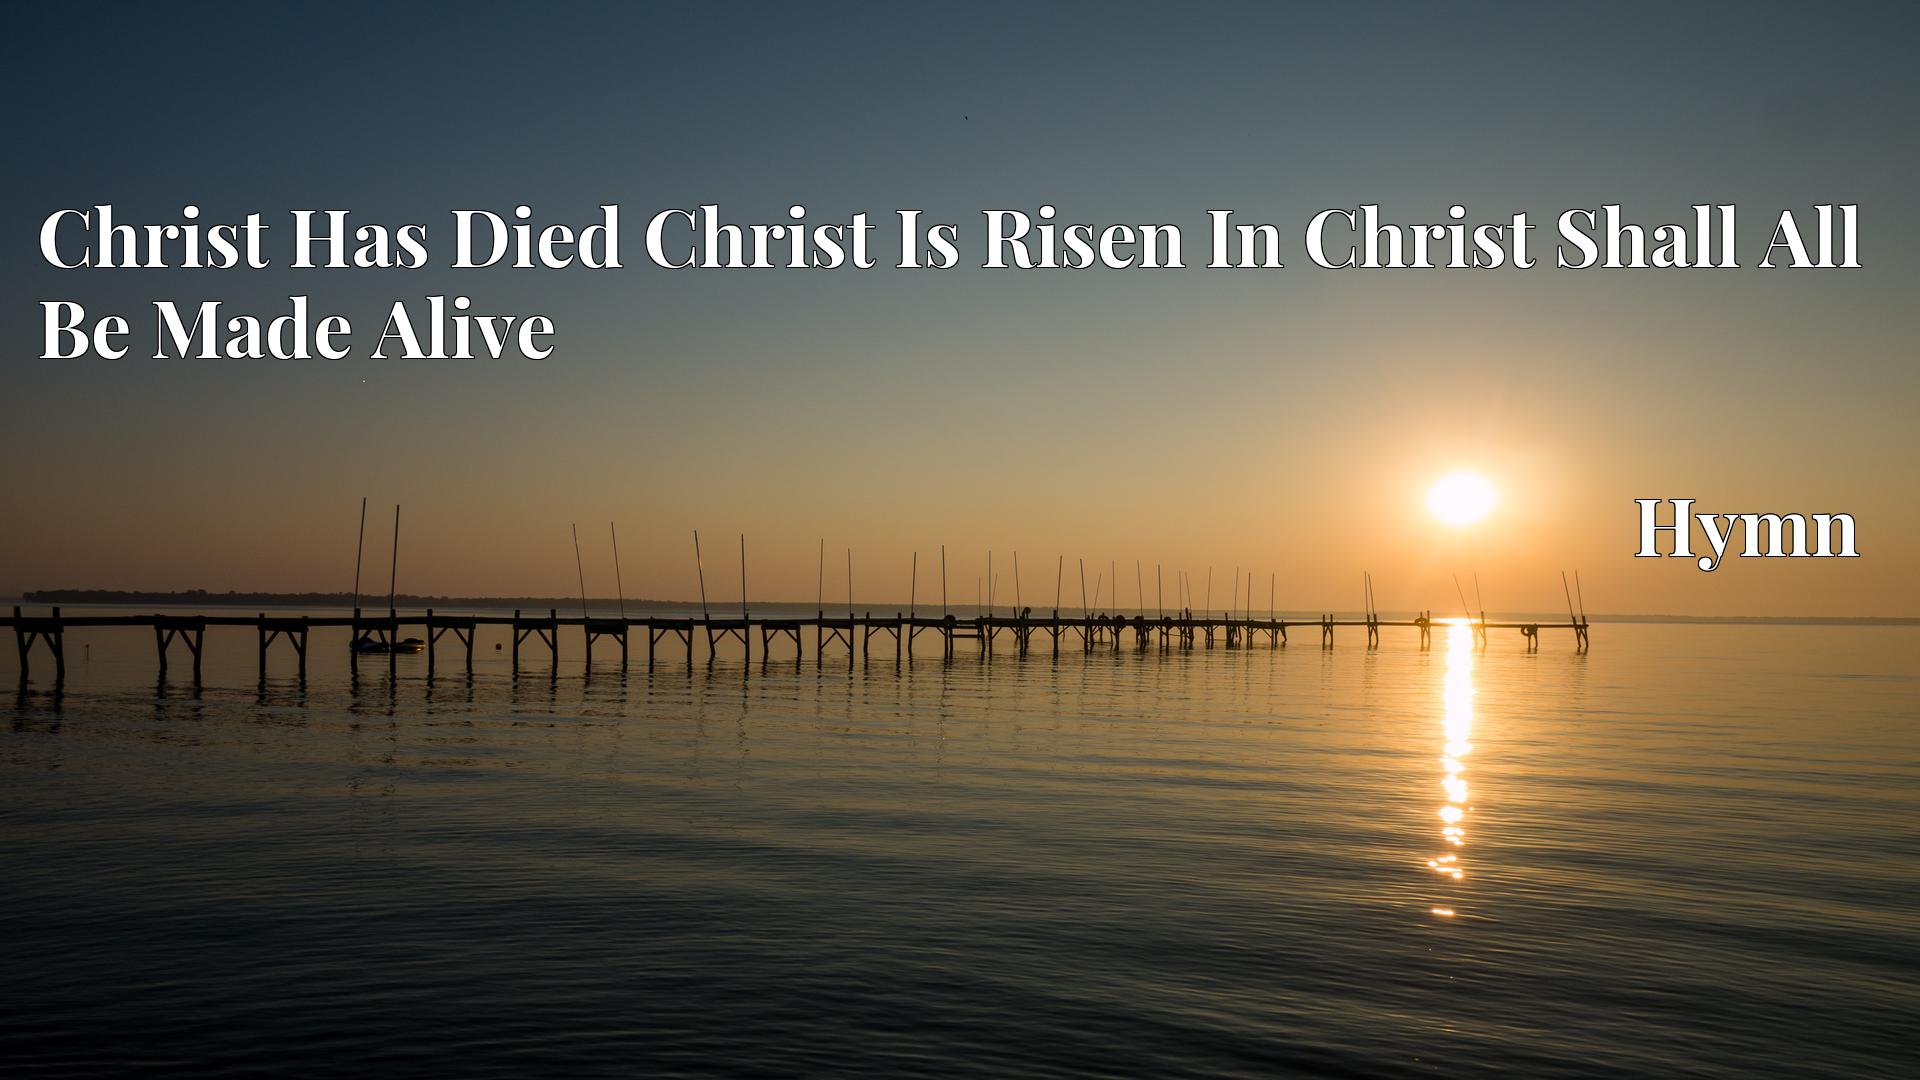 Christ Has Died Christ Is Risen In Christ Shall All Be Made Alive - Hymn